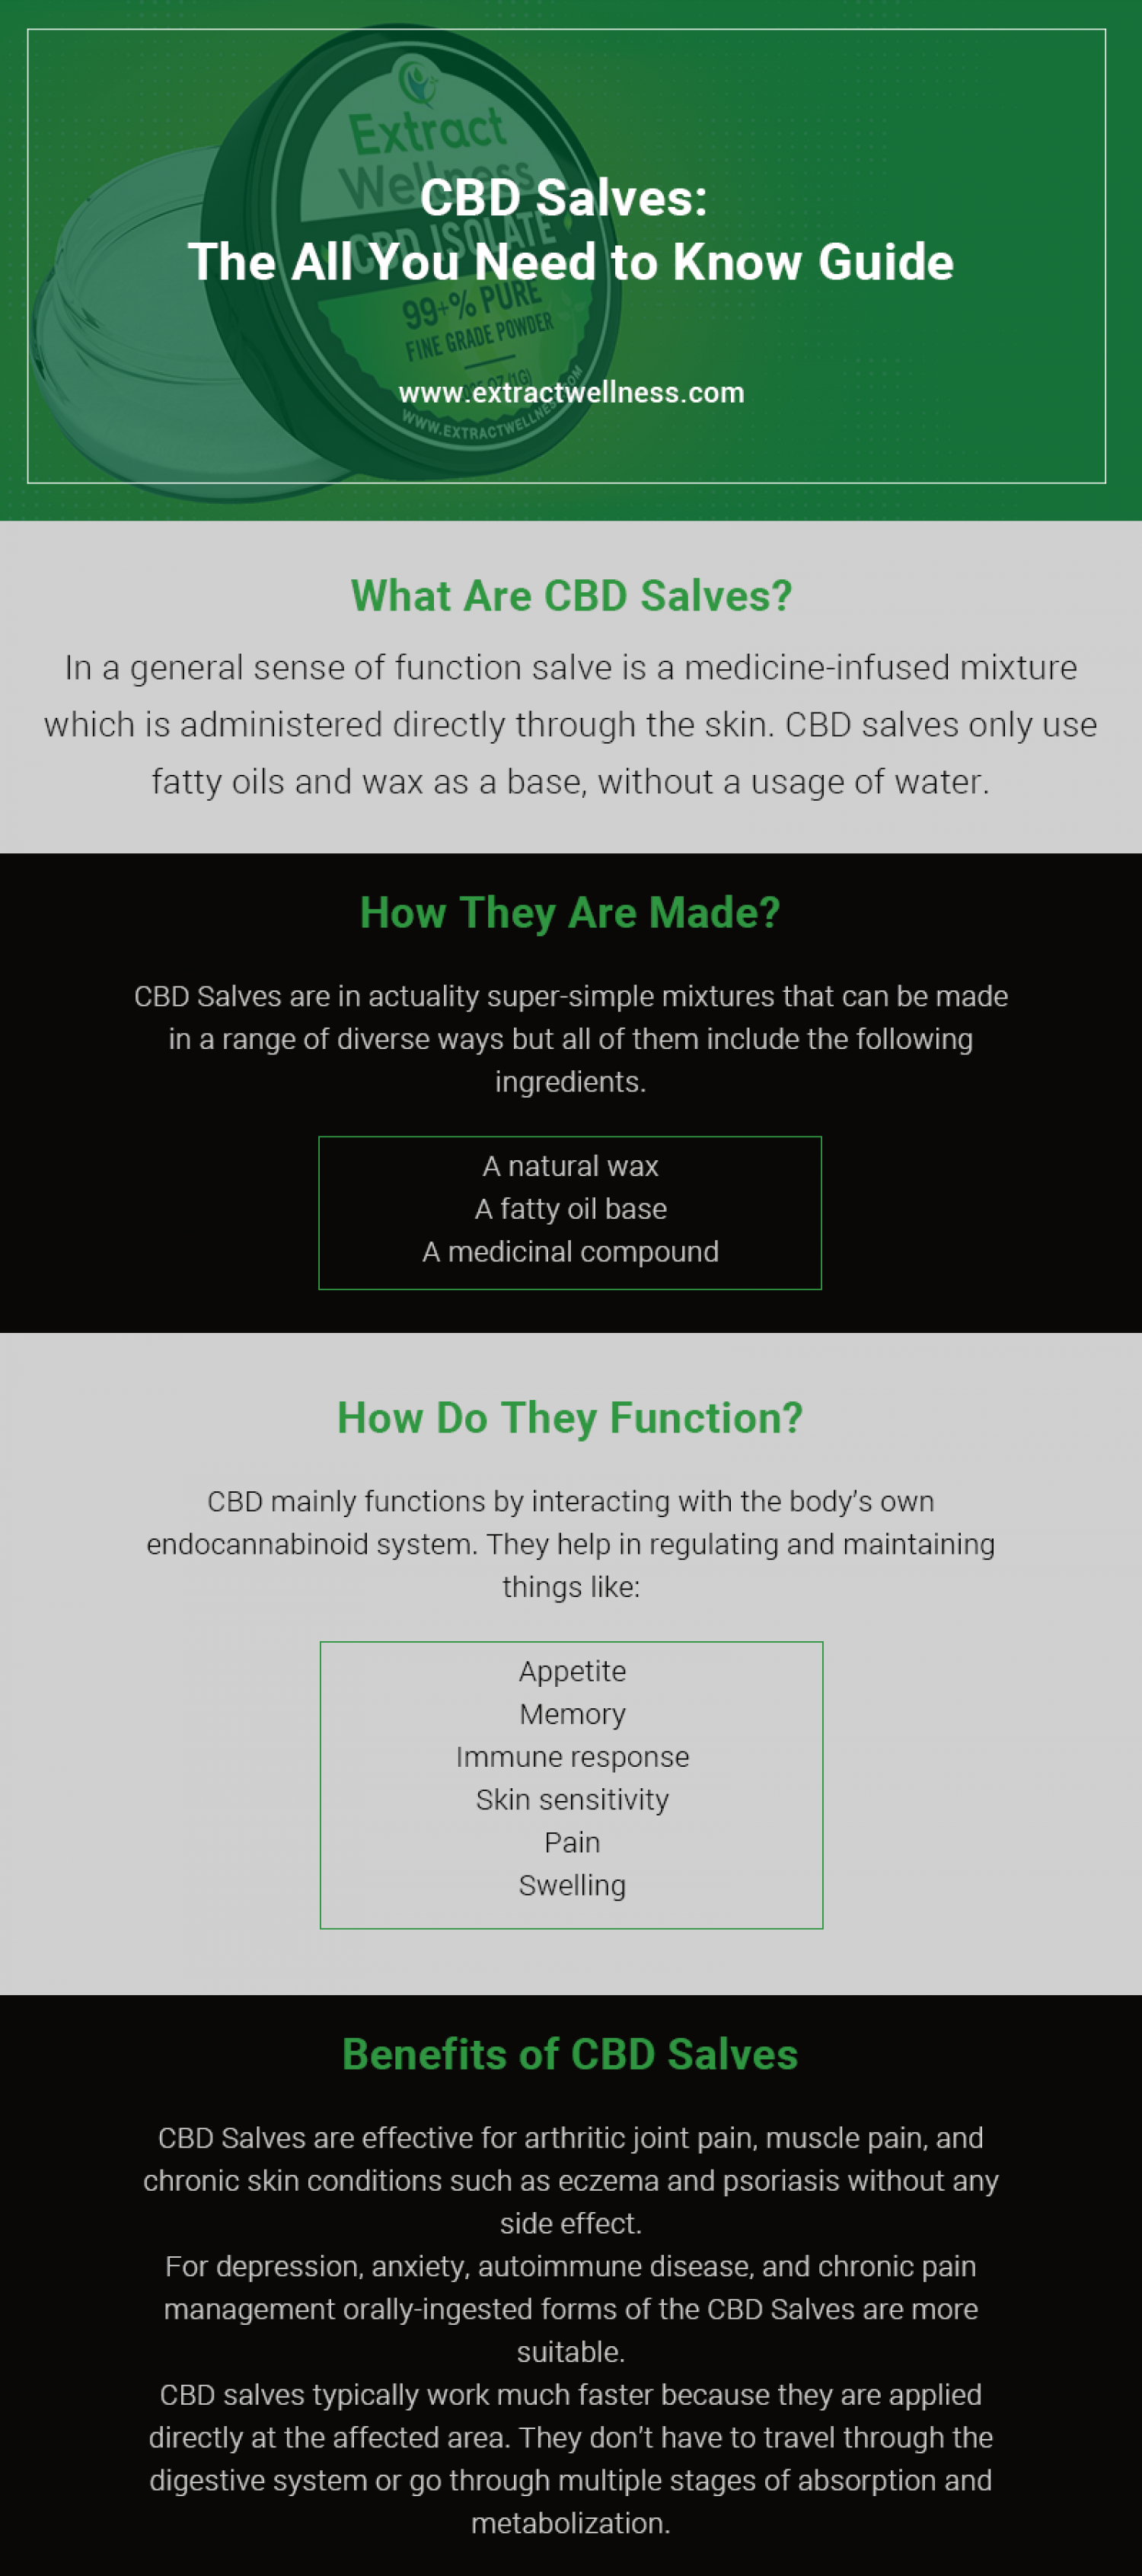 CBD Salves: The All You Need to Know Guide